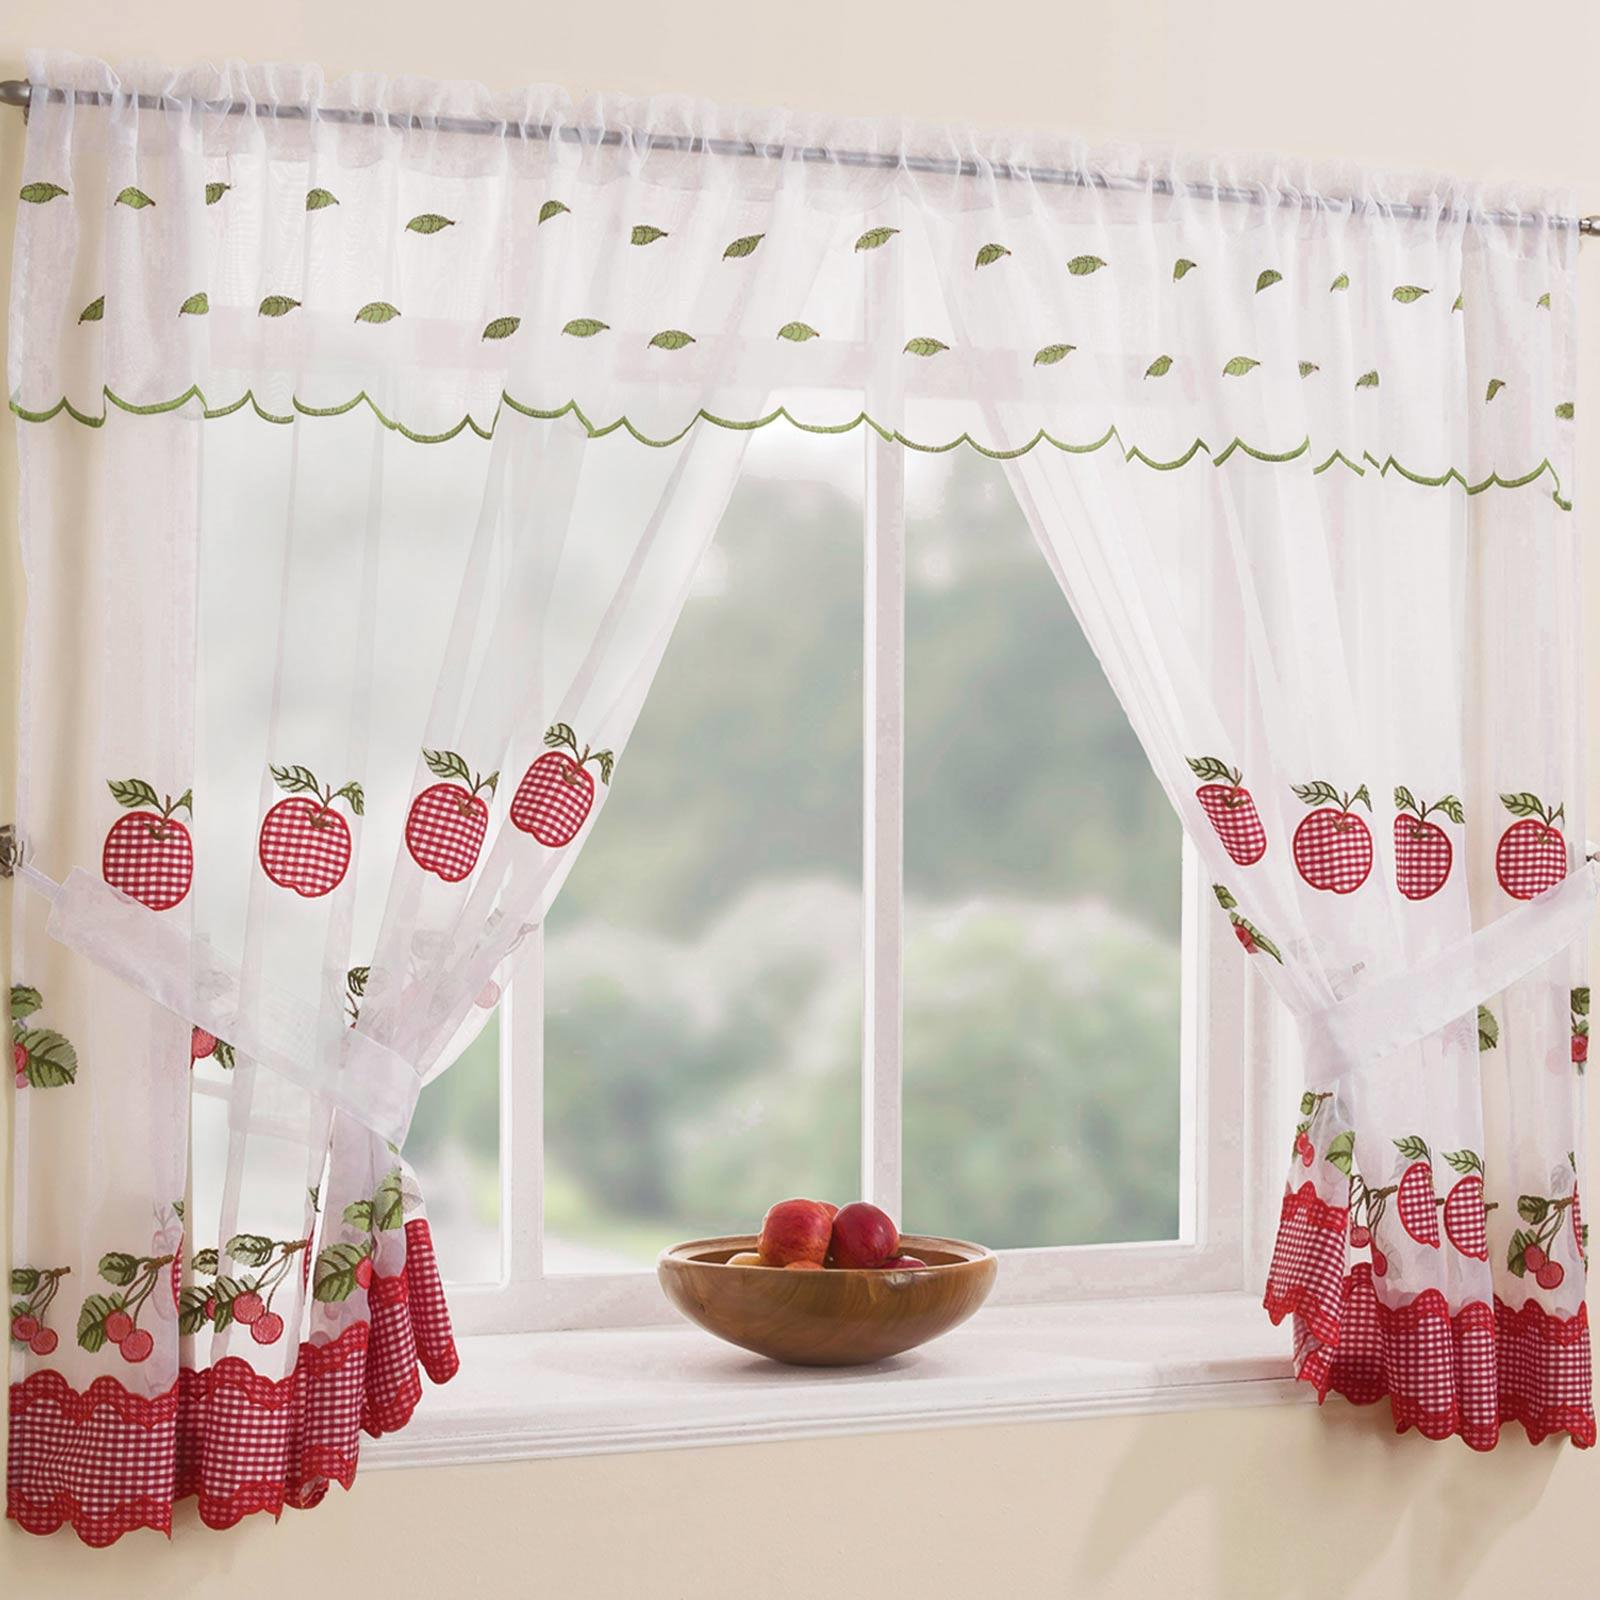 Details About Gingham Curtain Set Winchester Complete Window Ready Made Embroidered Curtains Within Glasgow Curtain Tier Sets (View 16 of 20)